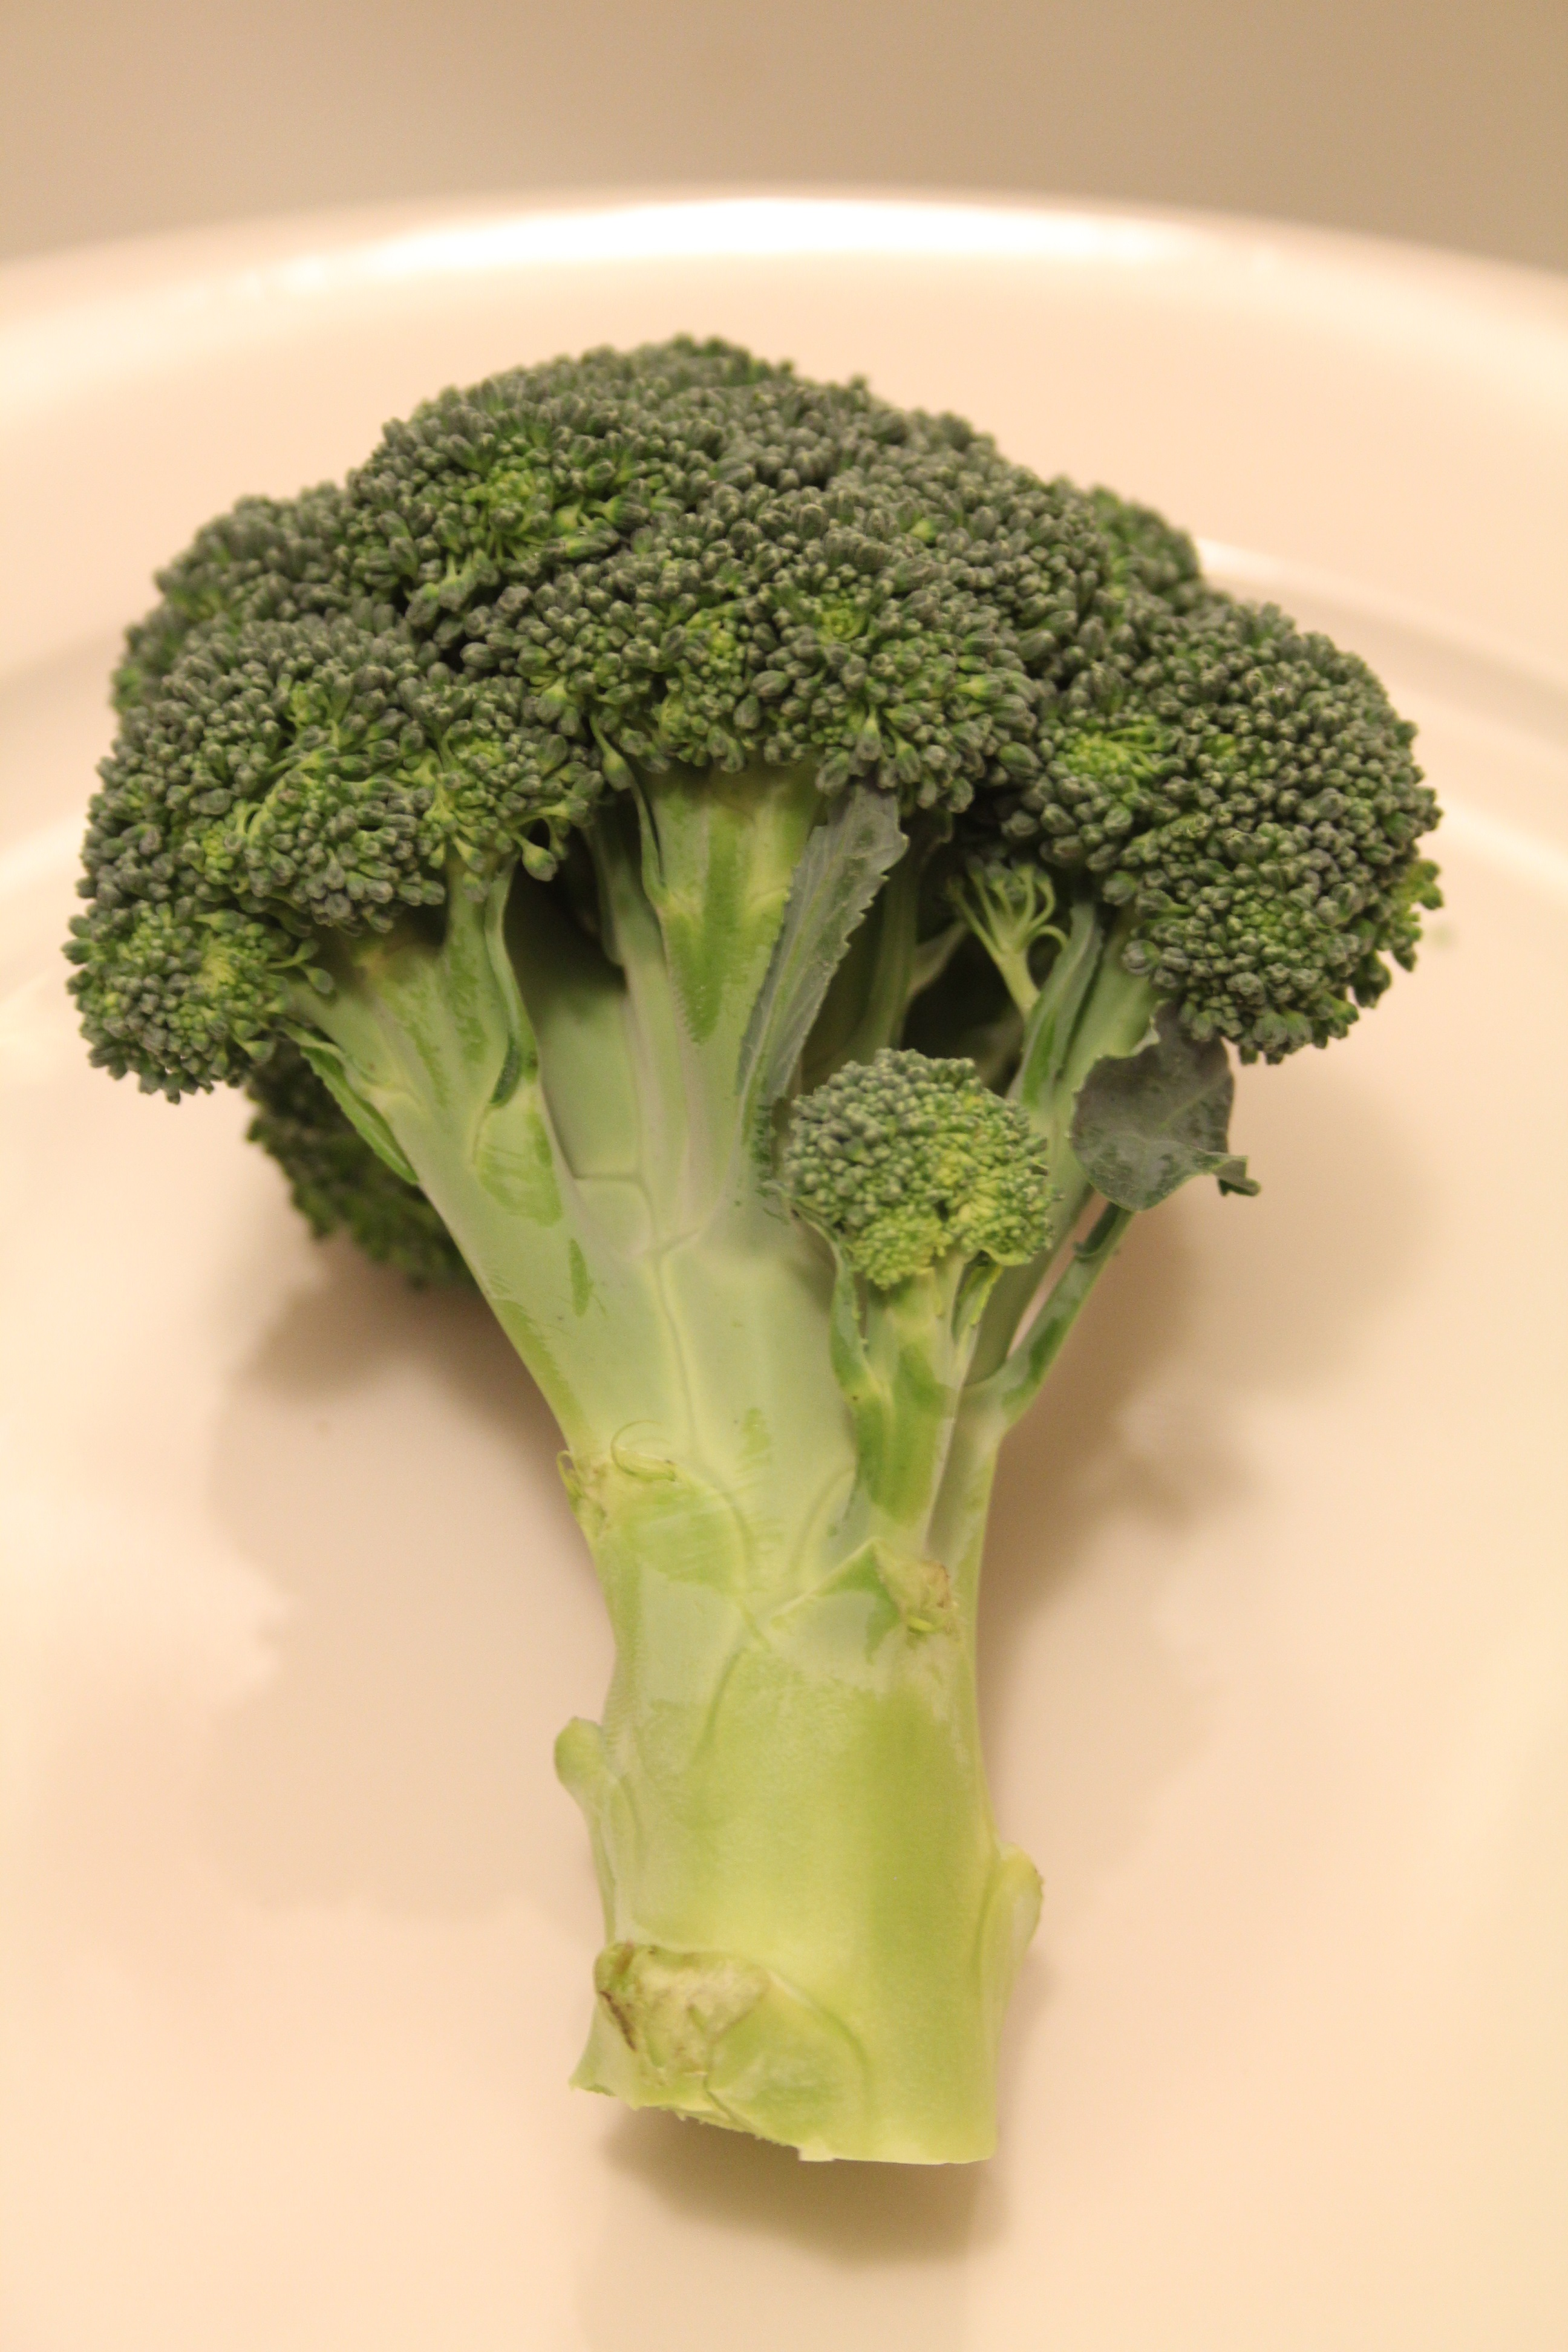 broccoli sprout extract benefits diabetes